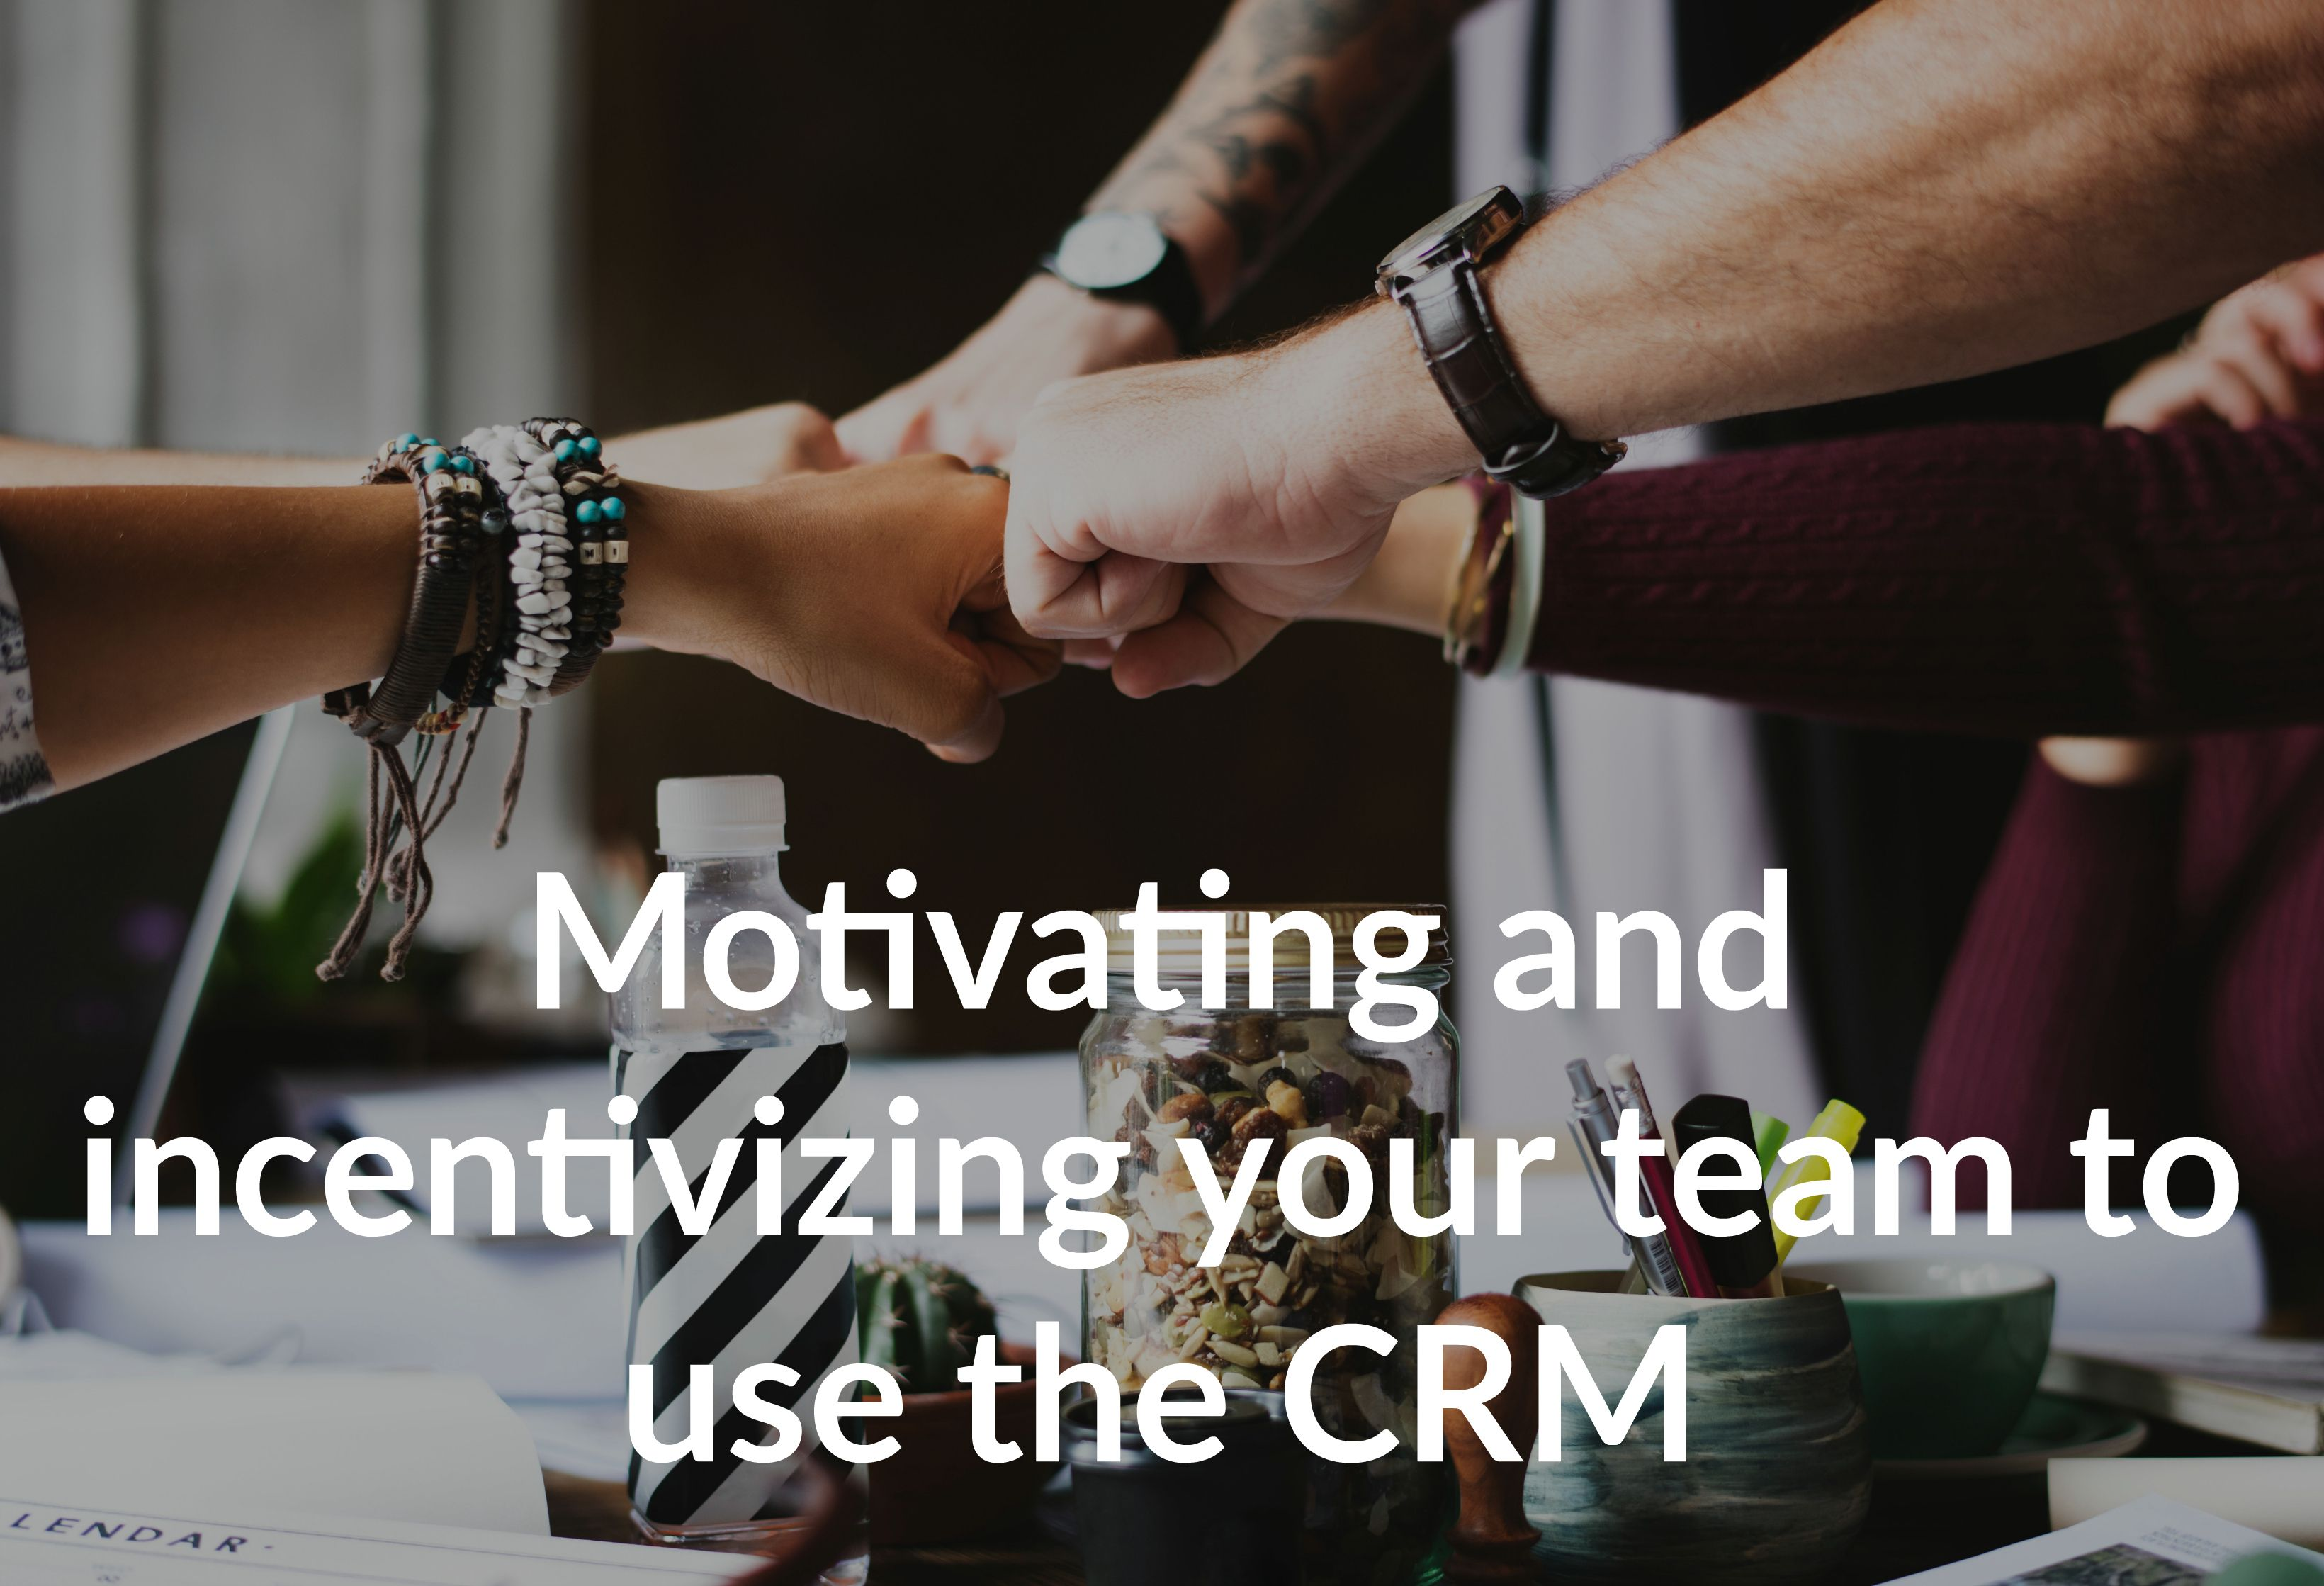 Motivating and incentivizing your team to use the CRM